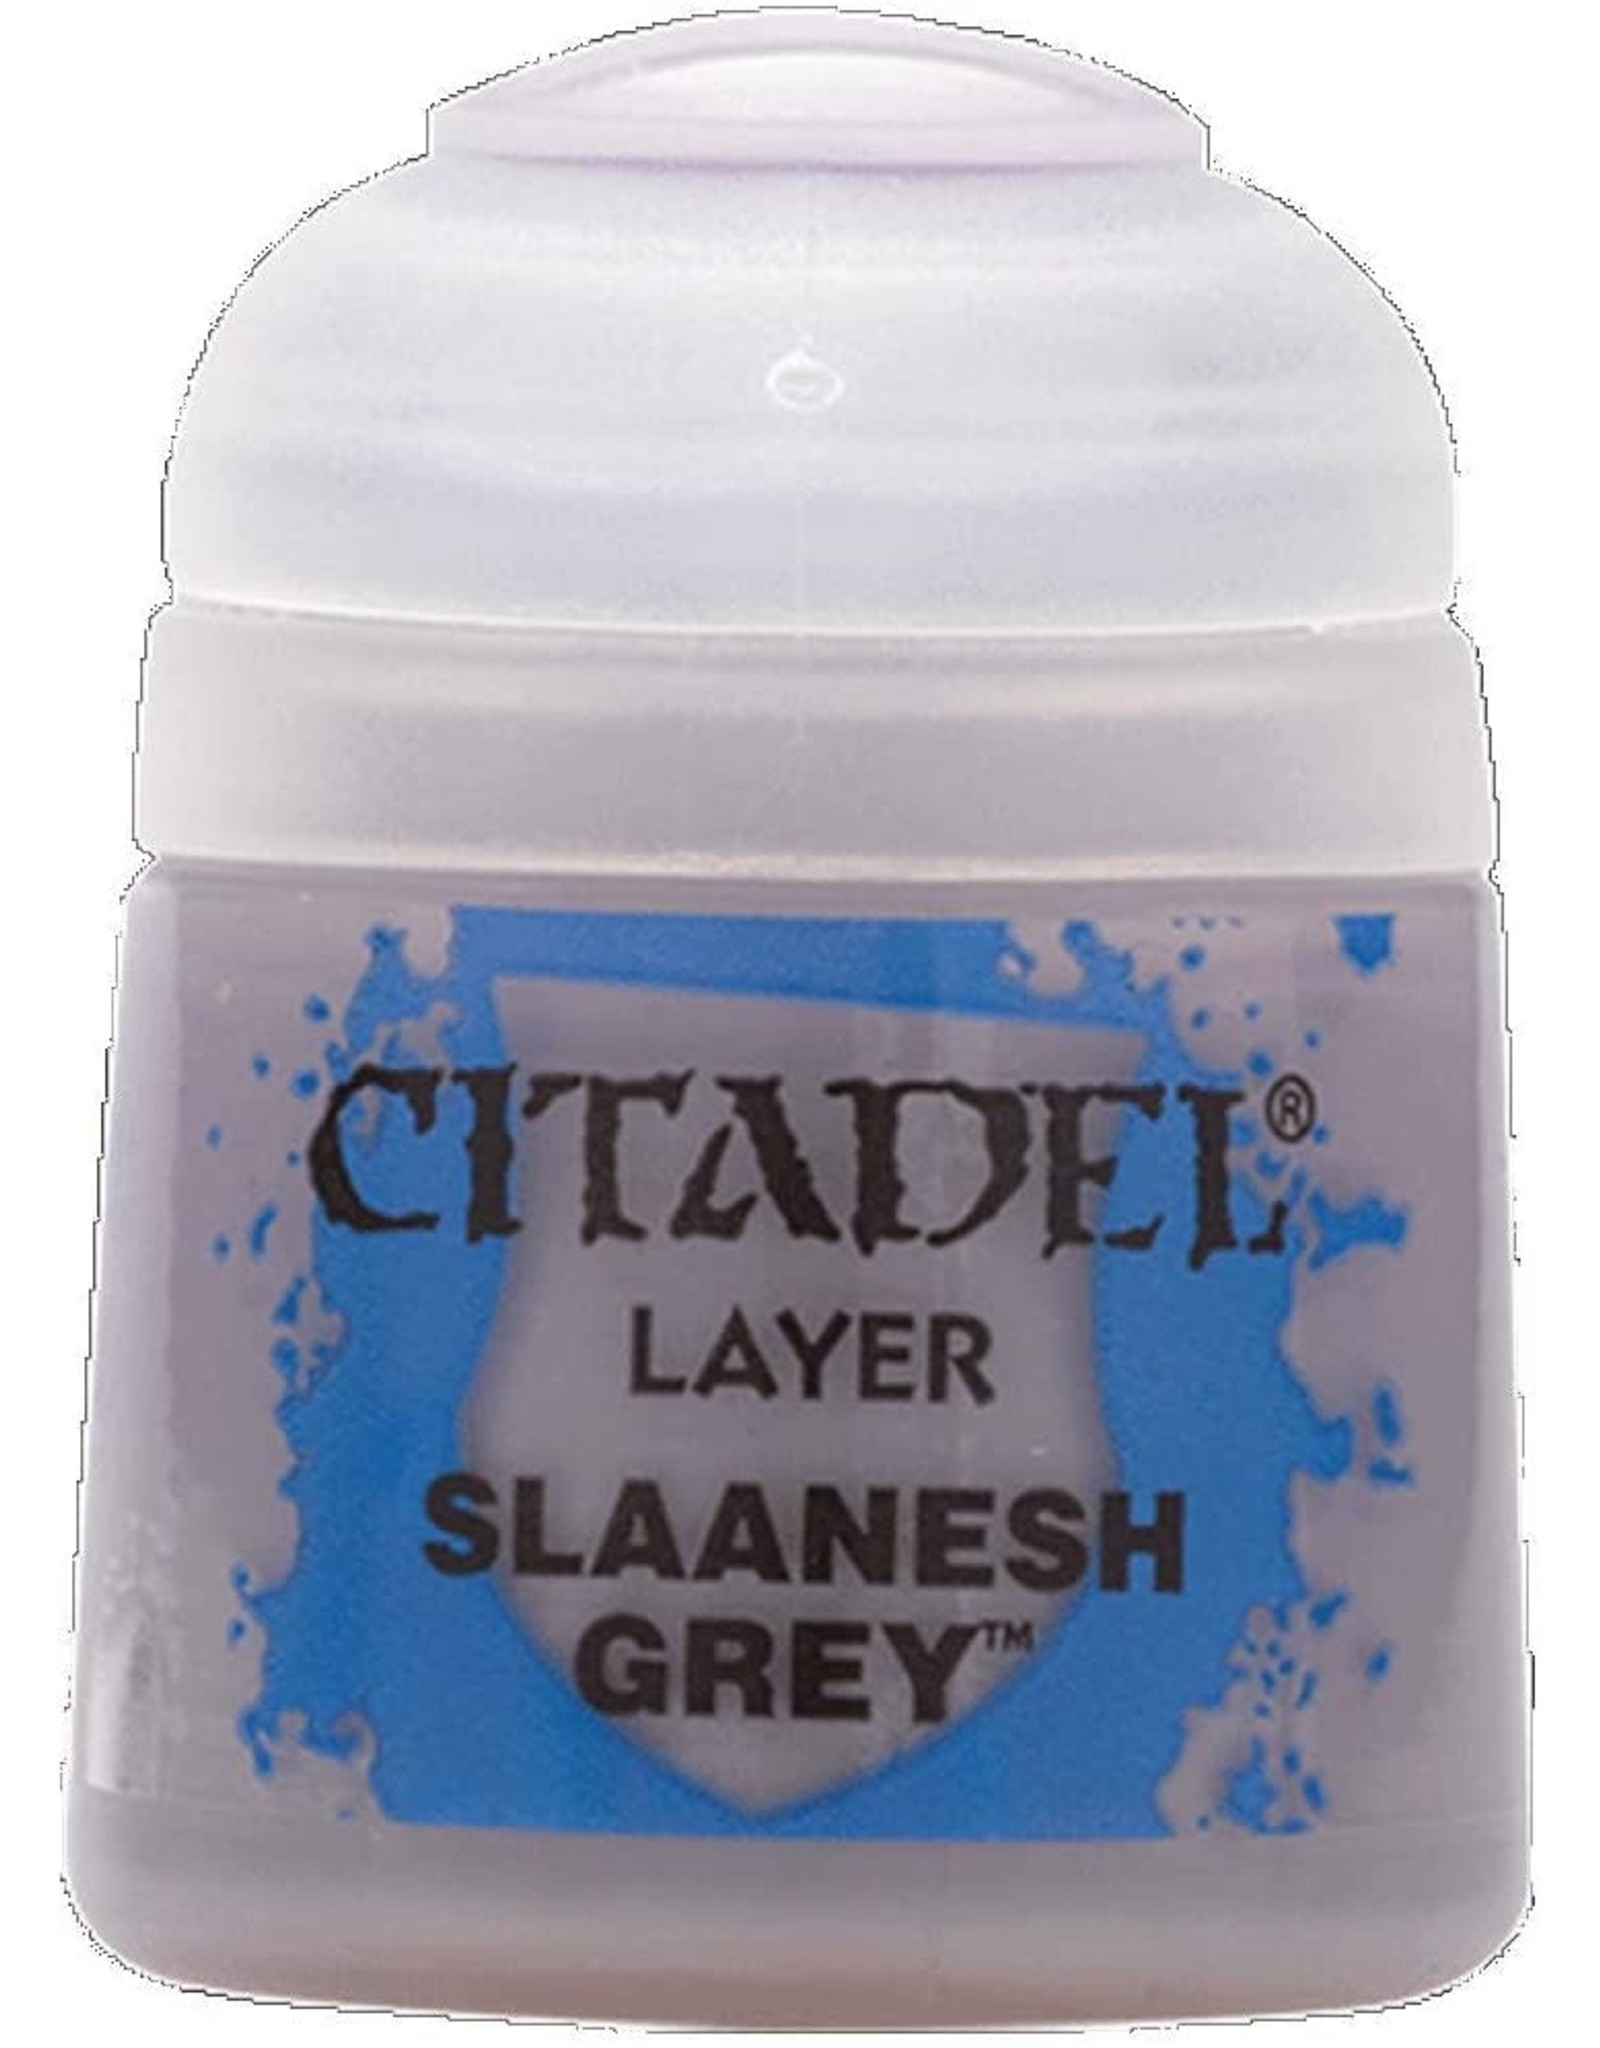 Games Workshop Citadel Paint: Slaanesh Grey 12ml